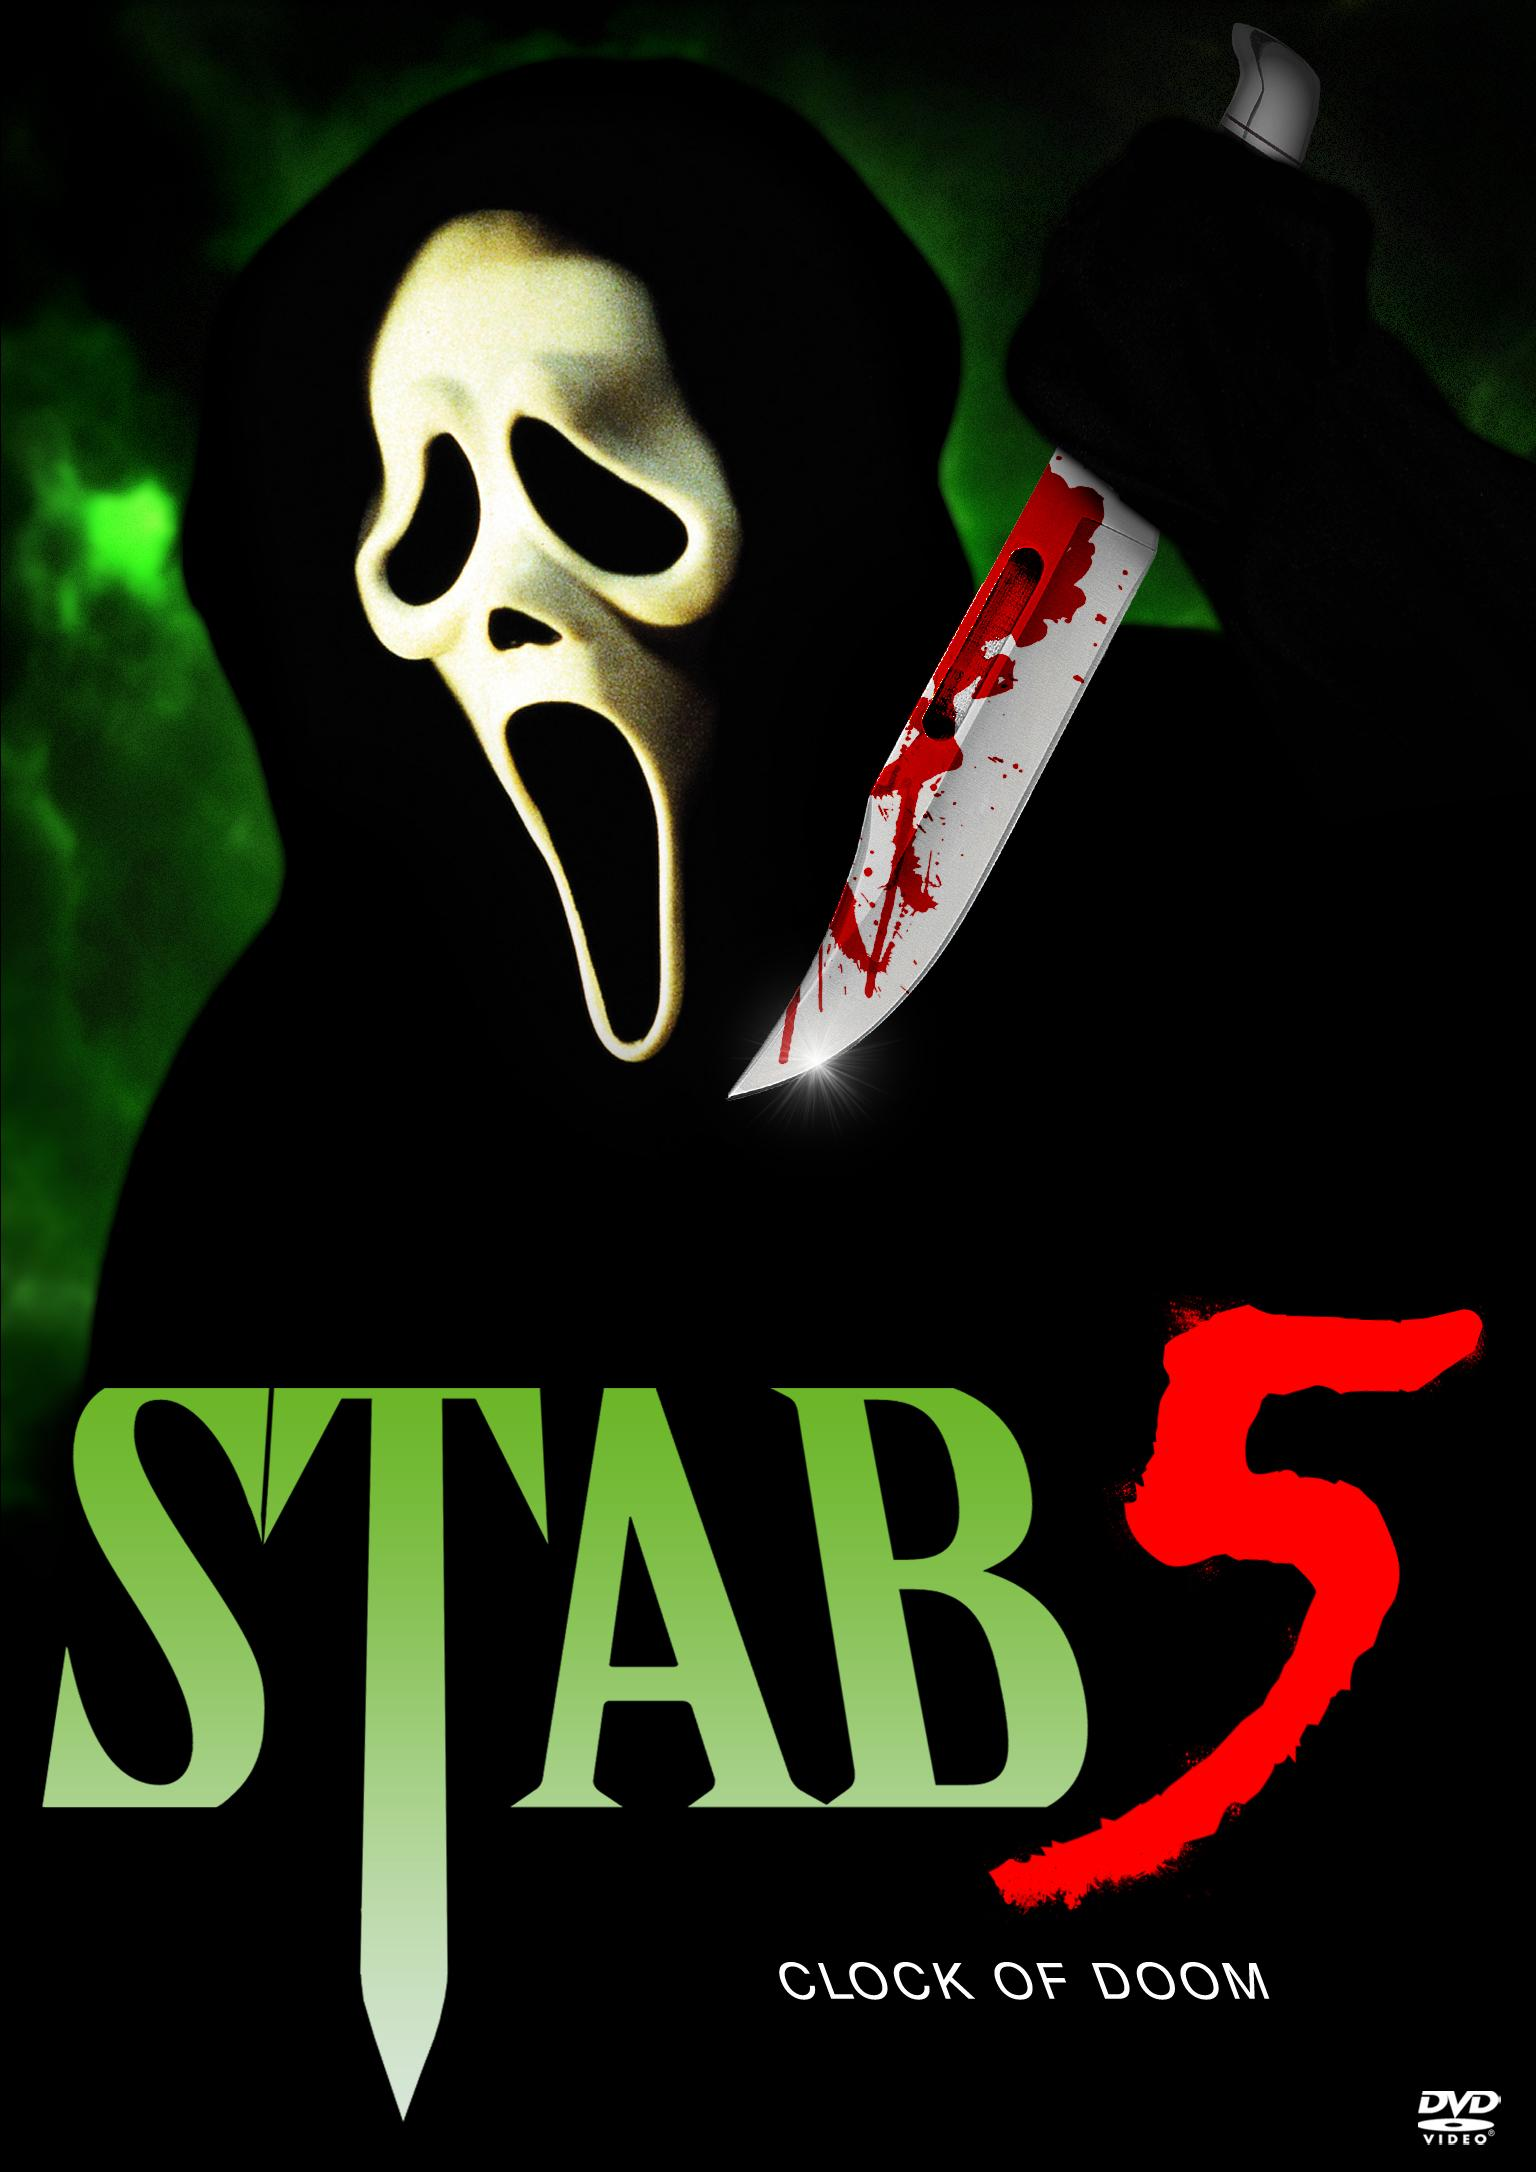 Watch Stab 5 (2011) Movie Online Free - Iwannawatch.to